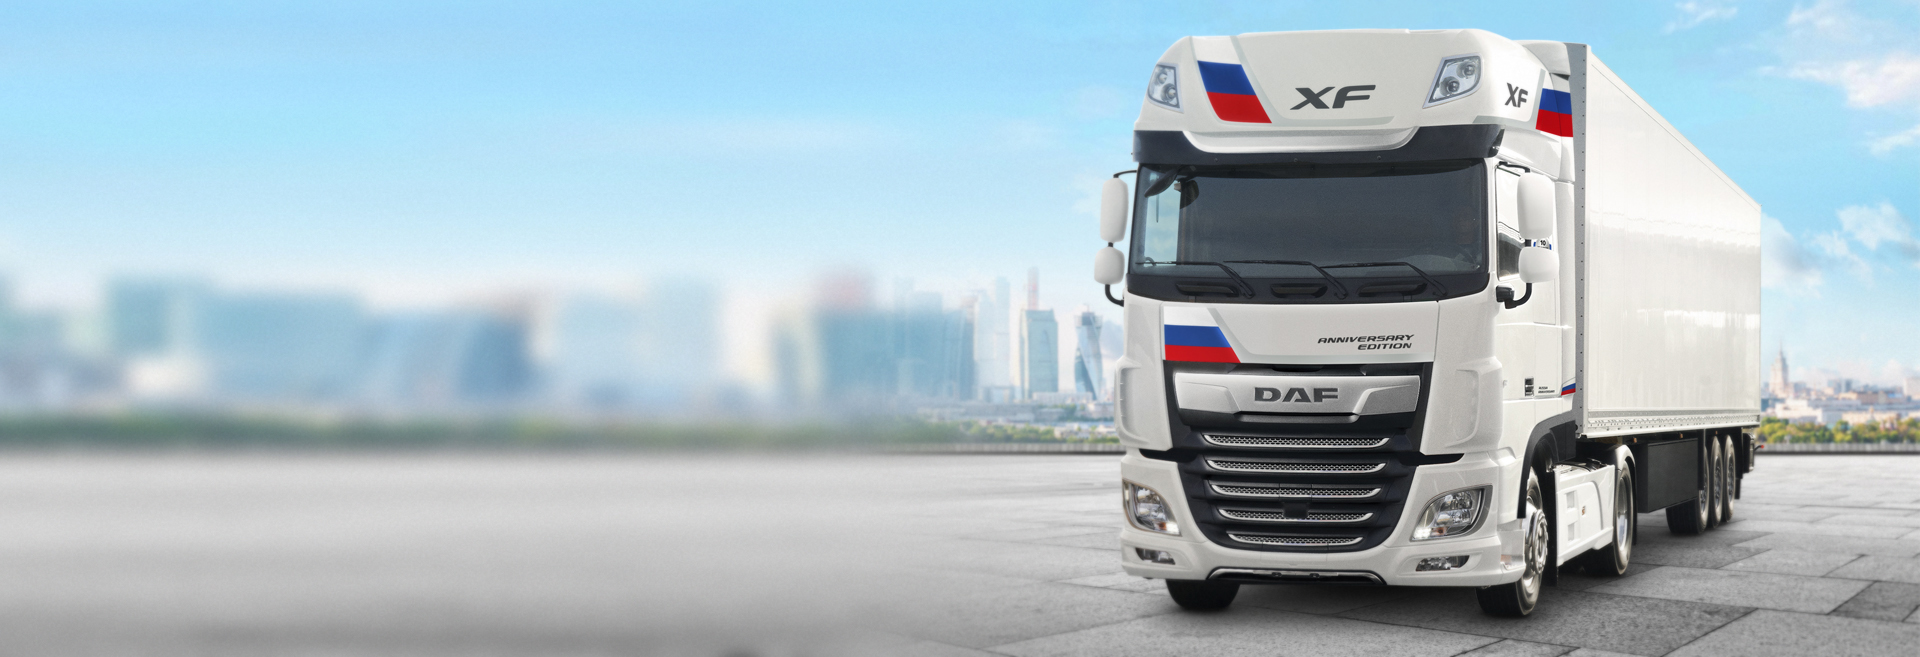 DAF-russia-10-years-homepage-banner-2021